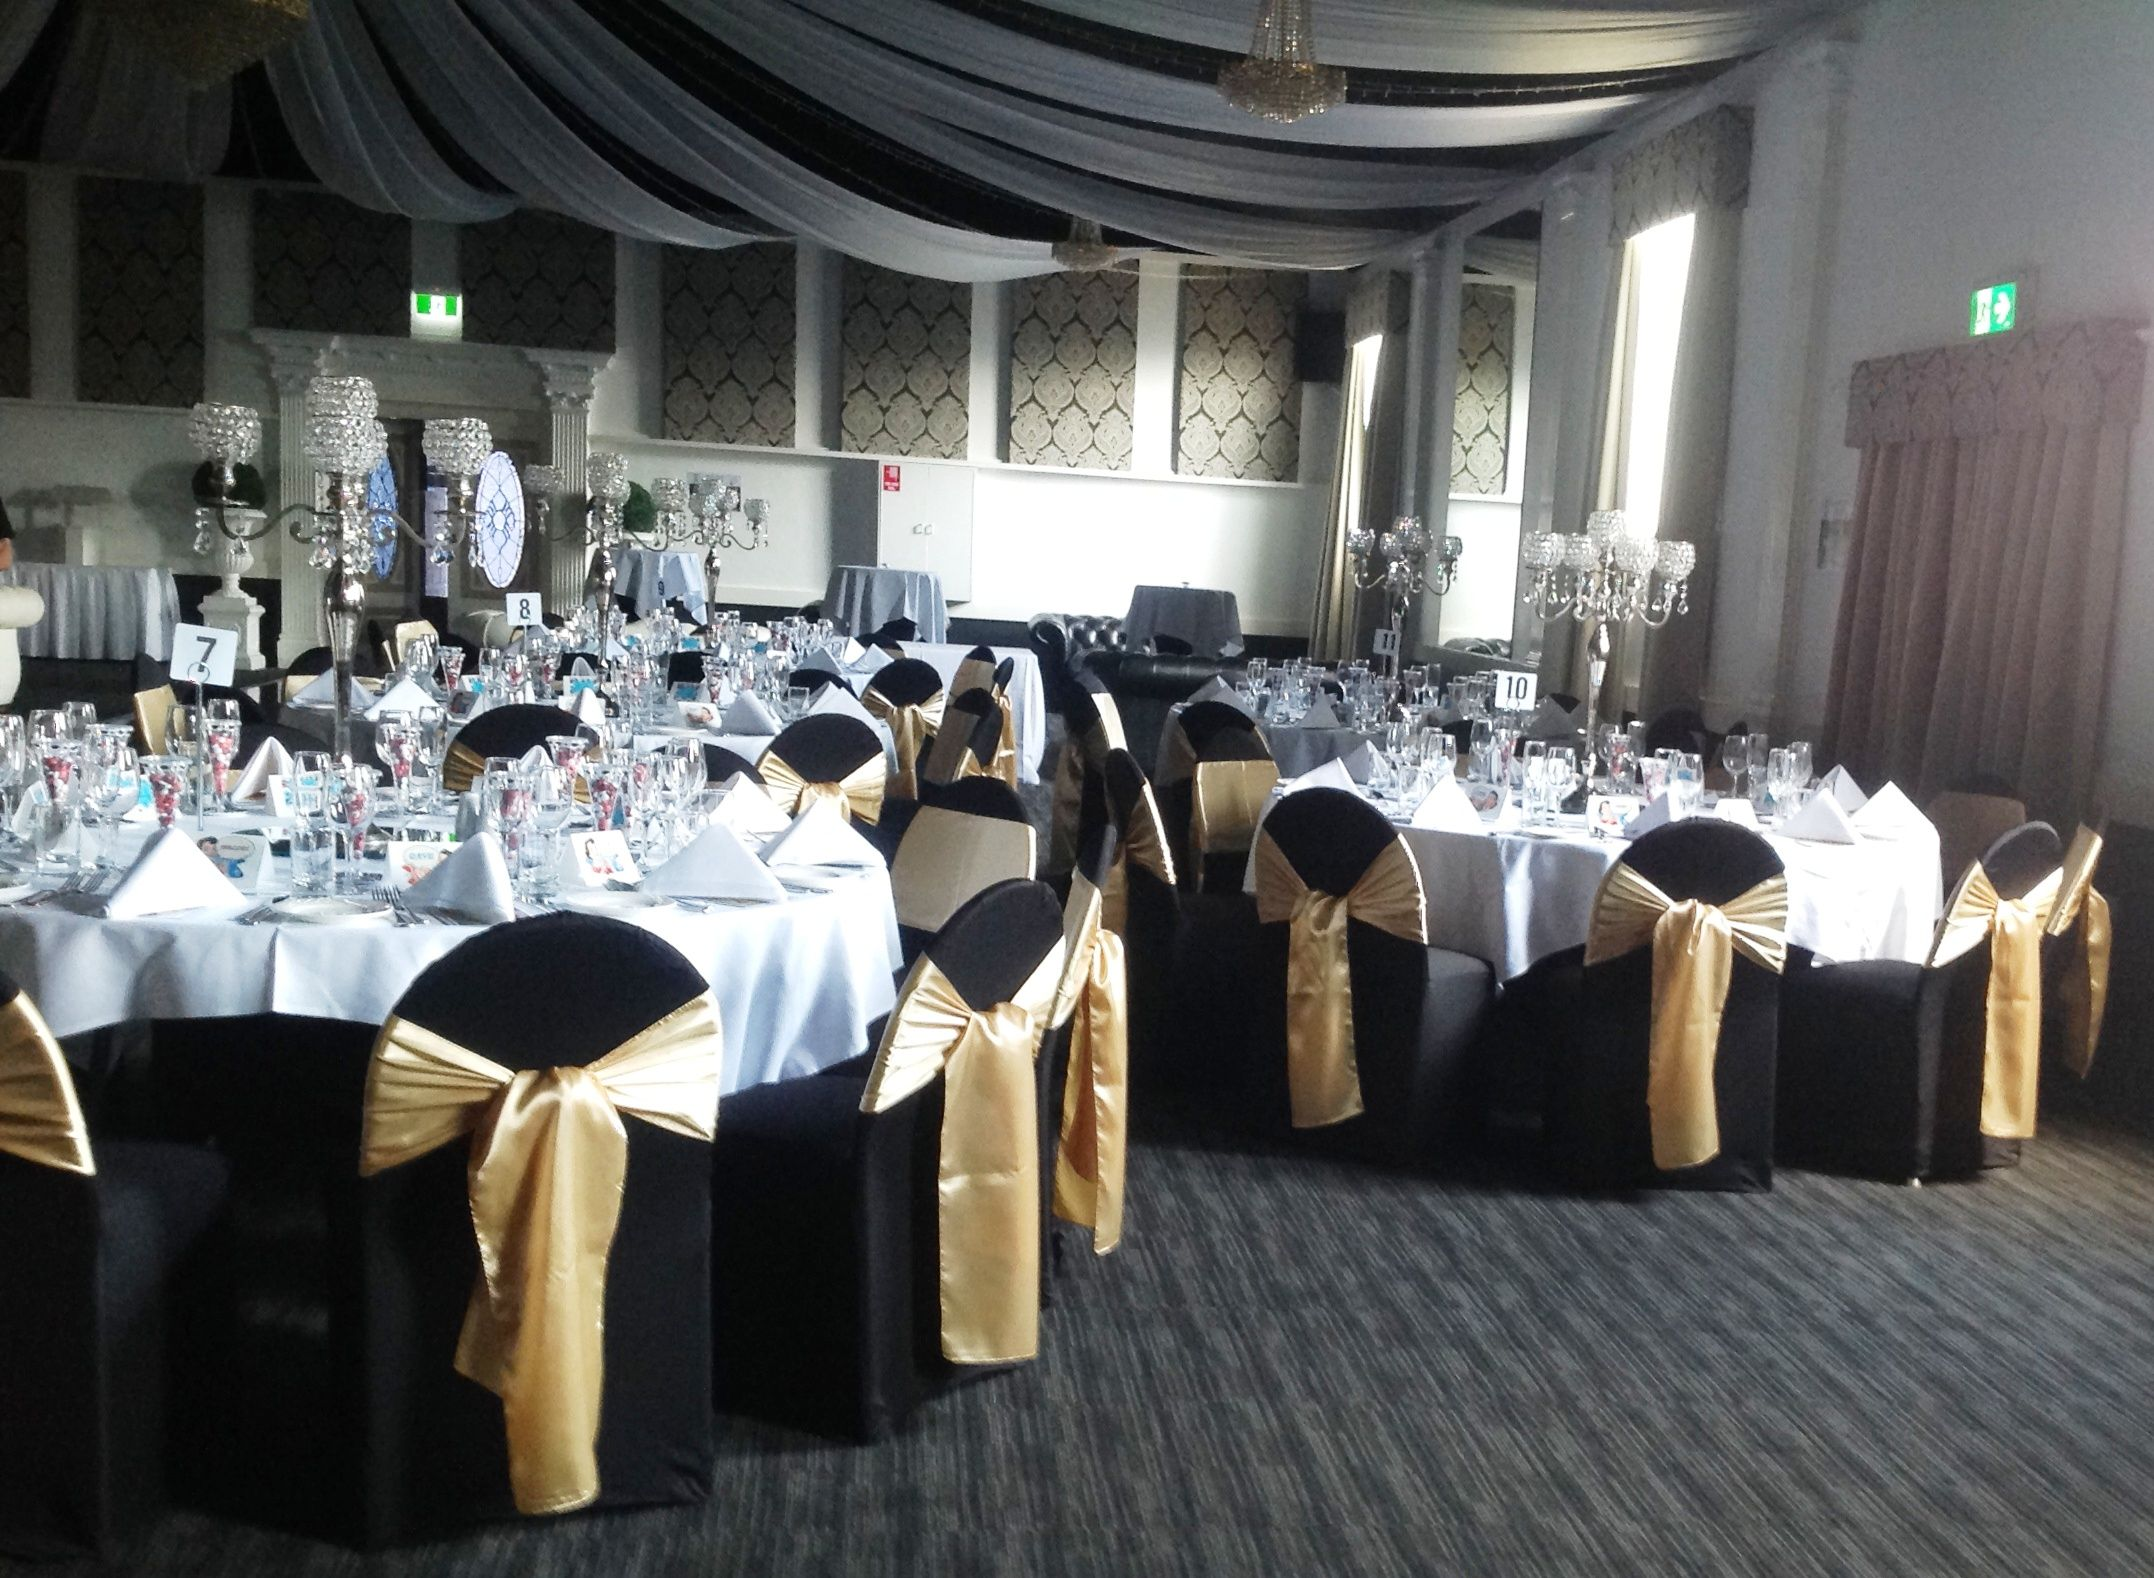 White wedding reception decor with alternating centrepieces of white white wedding reception decor with alternating centrepieces of white orchids and candelabras ceiling swags with fairy lights white chair covers a junglespirit Choice Image